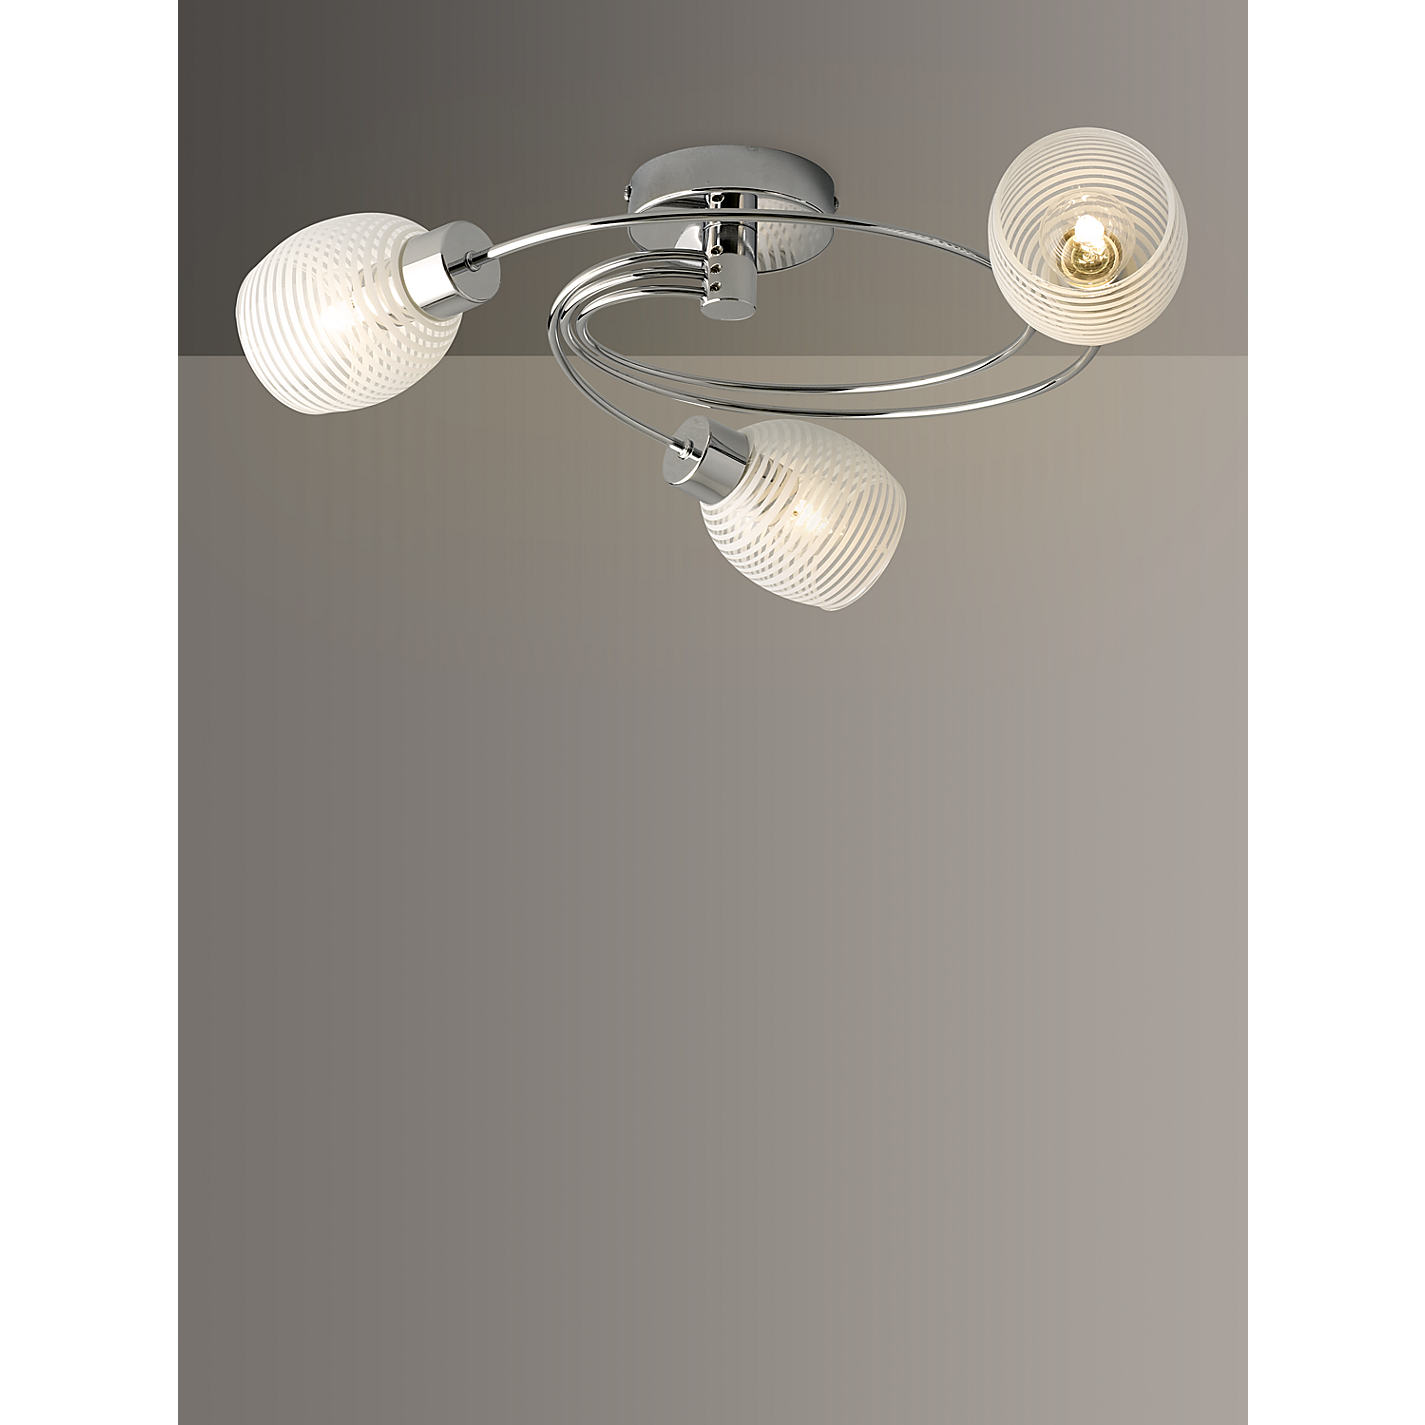 Buy john lewis maya ceiling light 3 arm john lewis buy john lewis maya ceiling light 3 arm online at johnlewis aloadofball Gallery